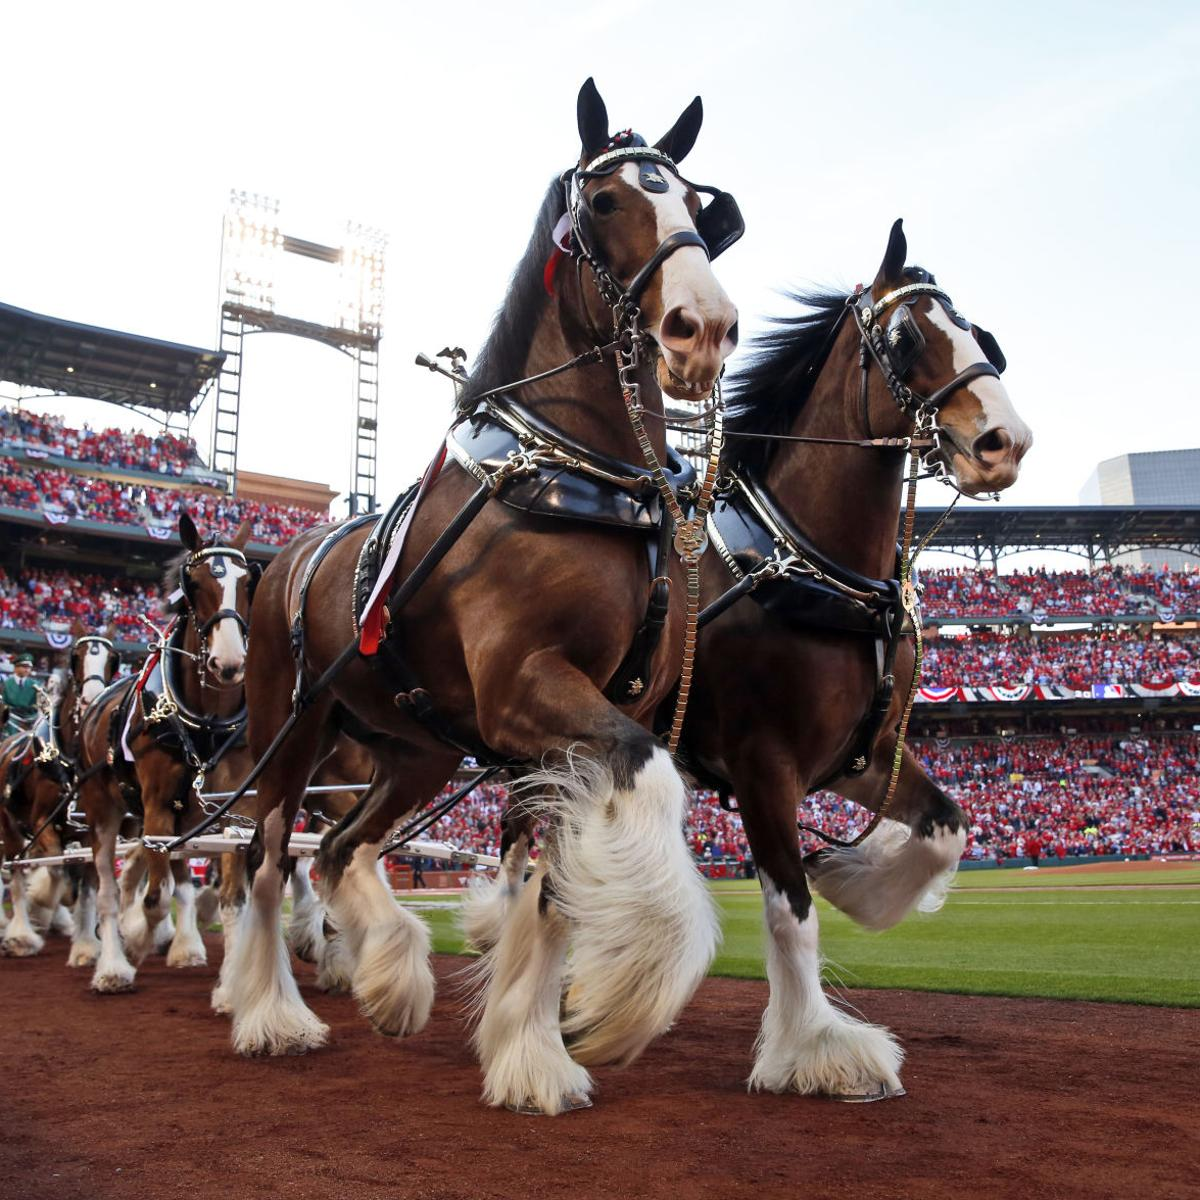 History of the budweiser clydesdale